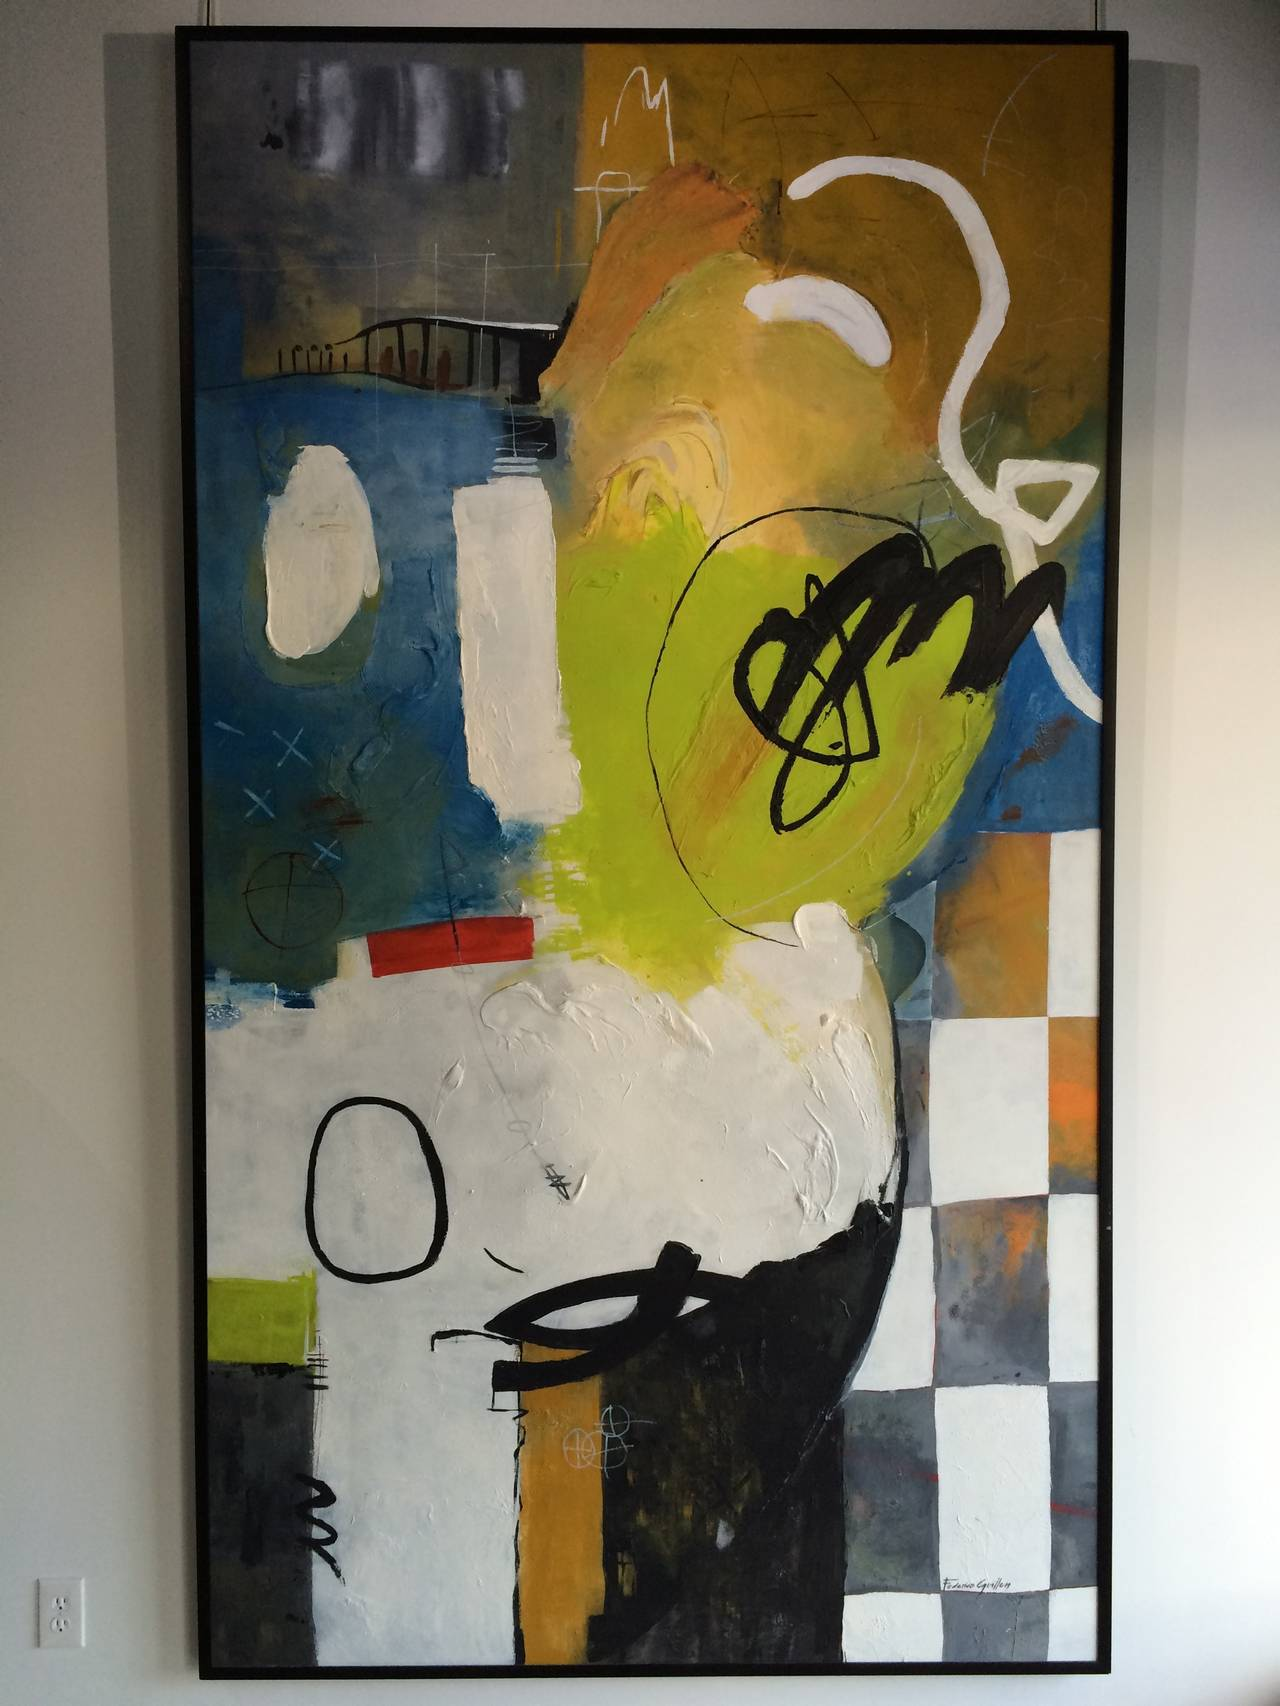 Large abstract painting by Miami artist Federico Guillen.